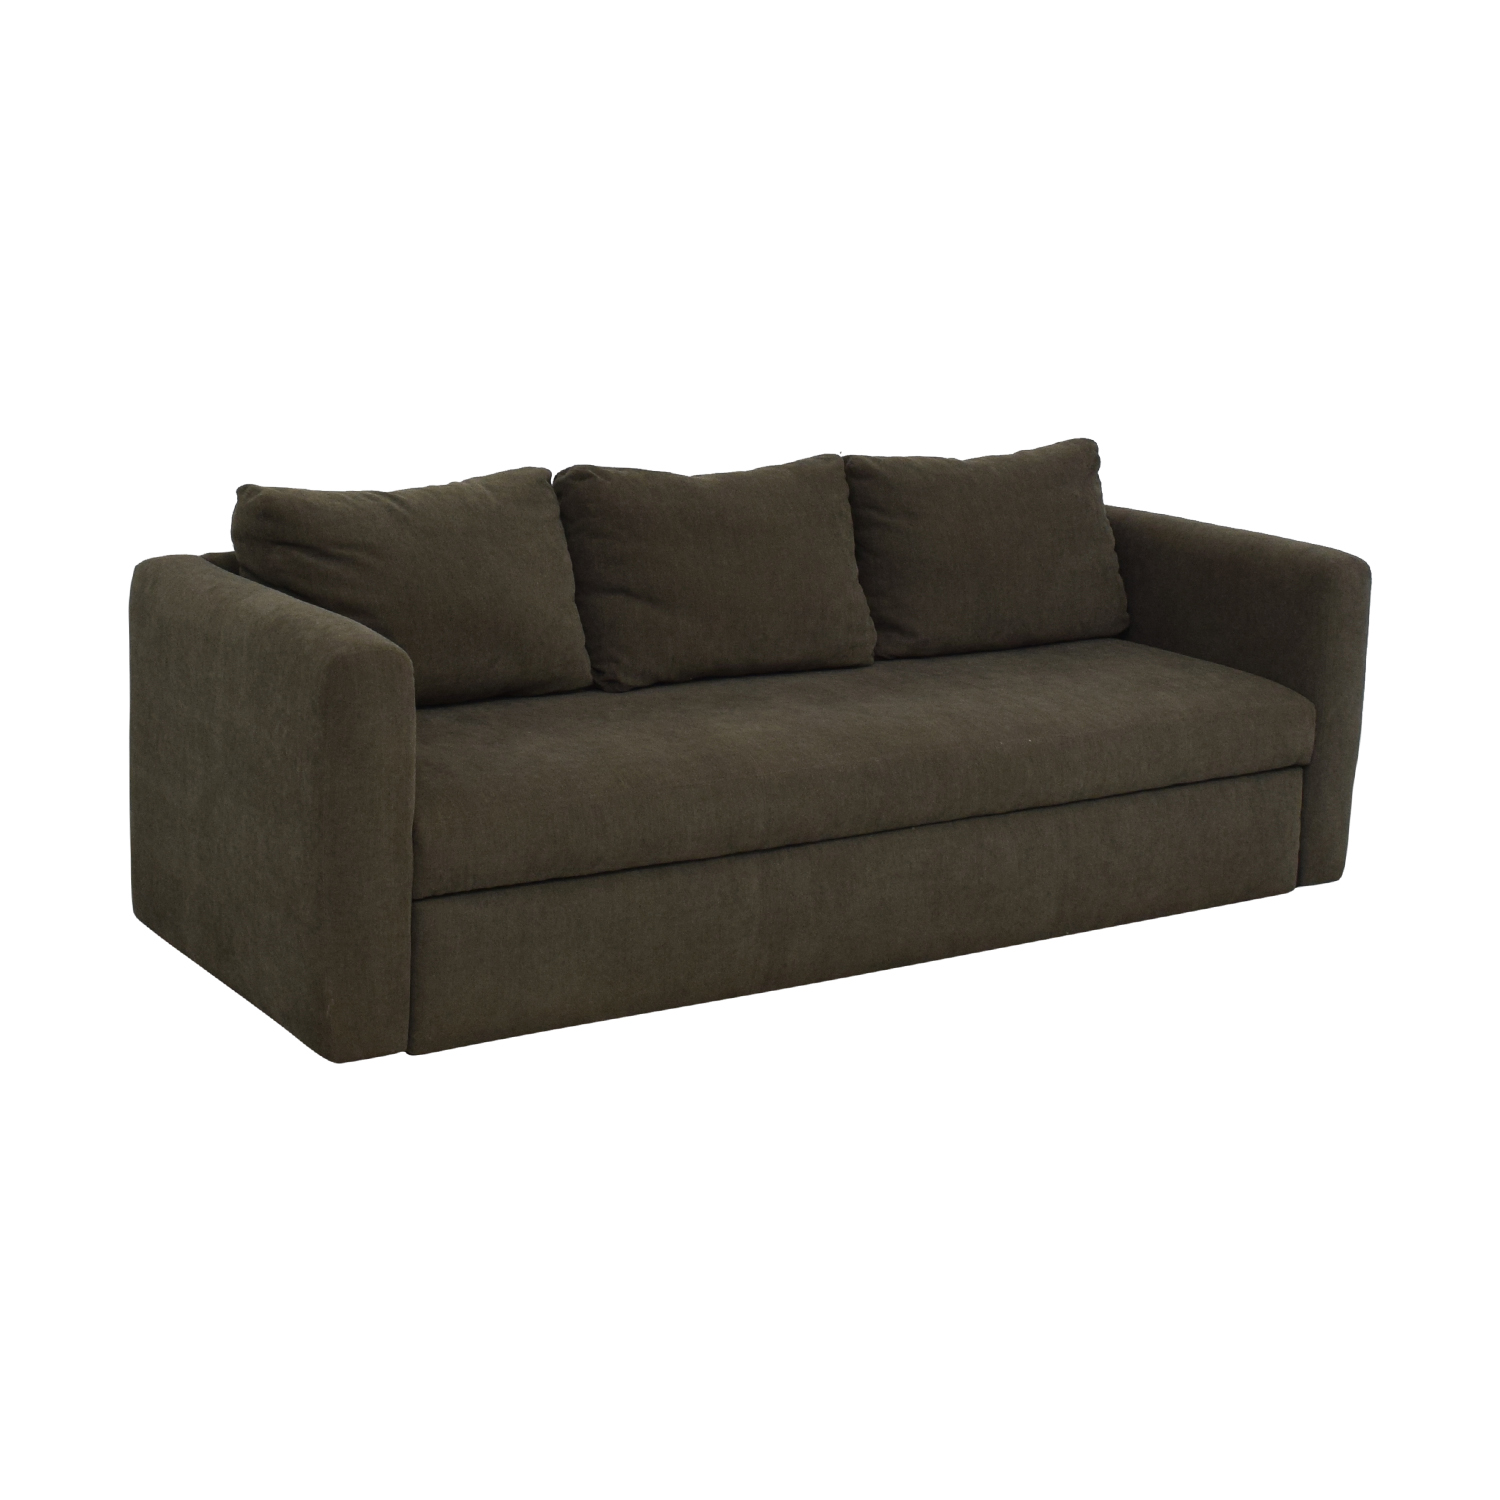 "shop Room & Board Room & Board Oxford Custom 86"" Pop-Up Platform Full Sleeper Sofa online"